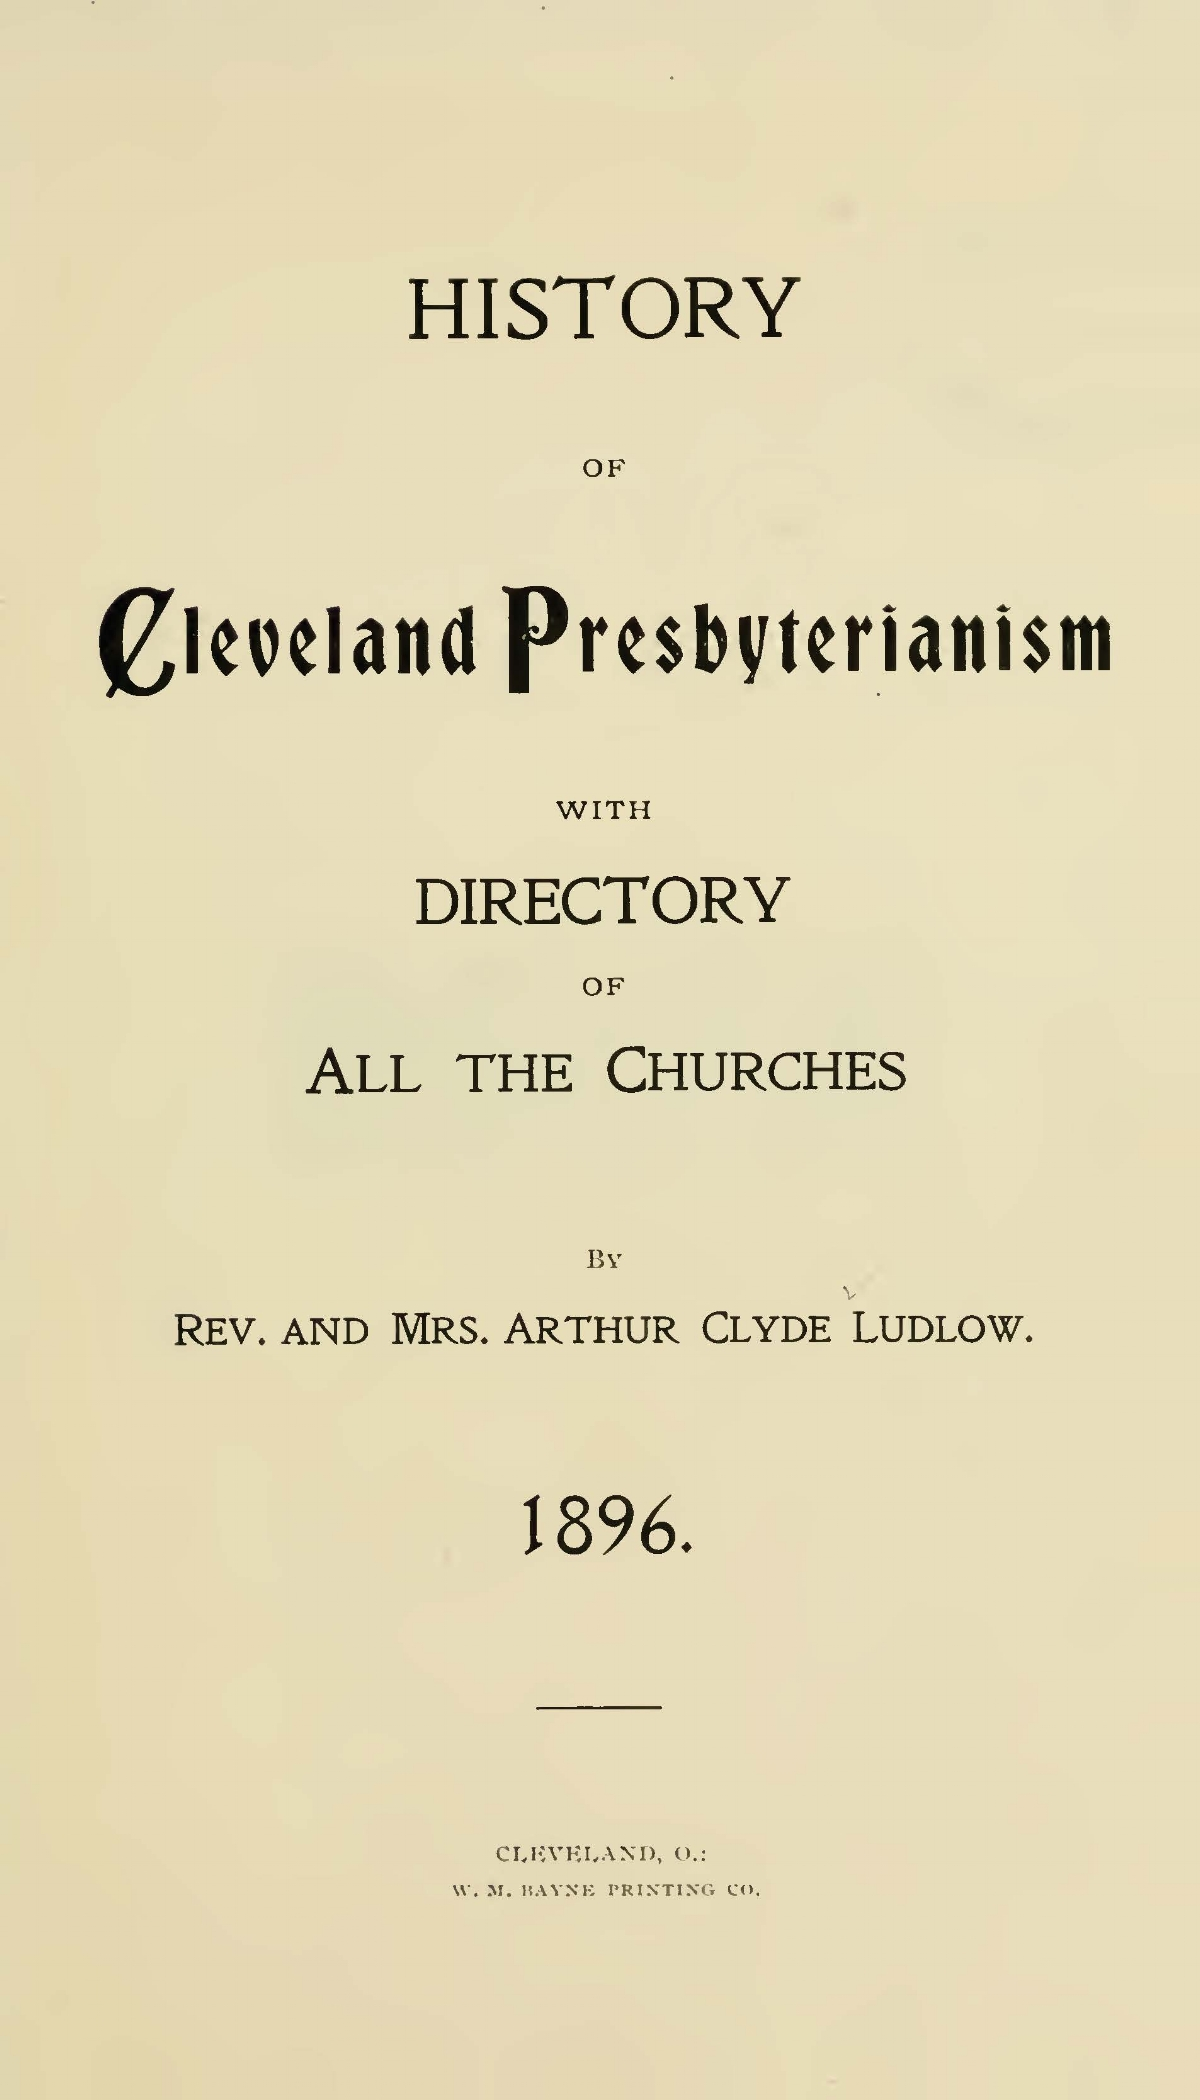 Ludlow, Arthur Clyde, History of Cleveland Presbyterianism Title Page.jpg